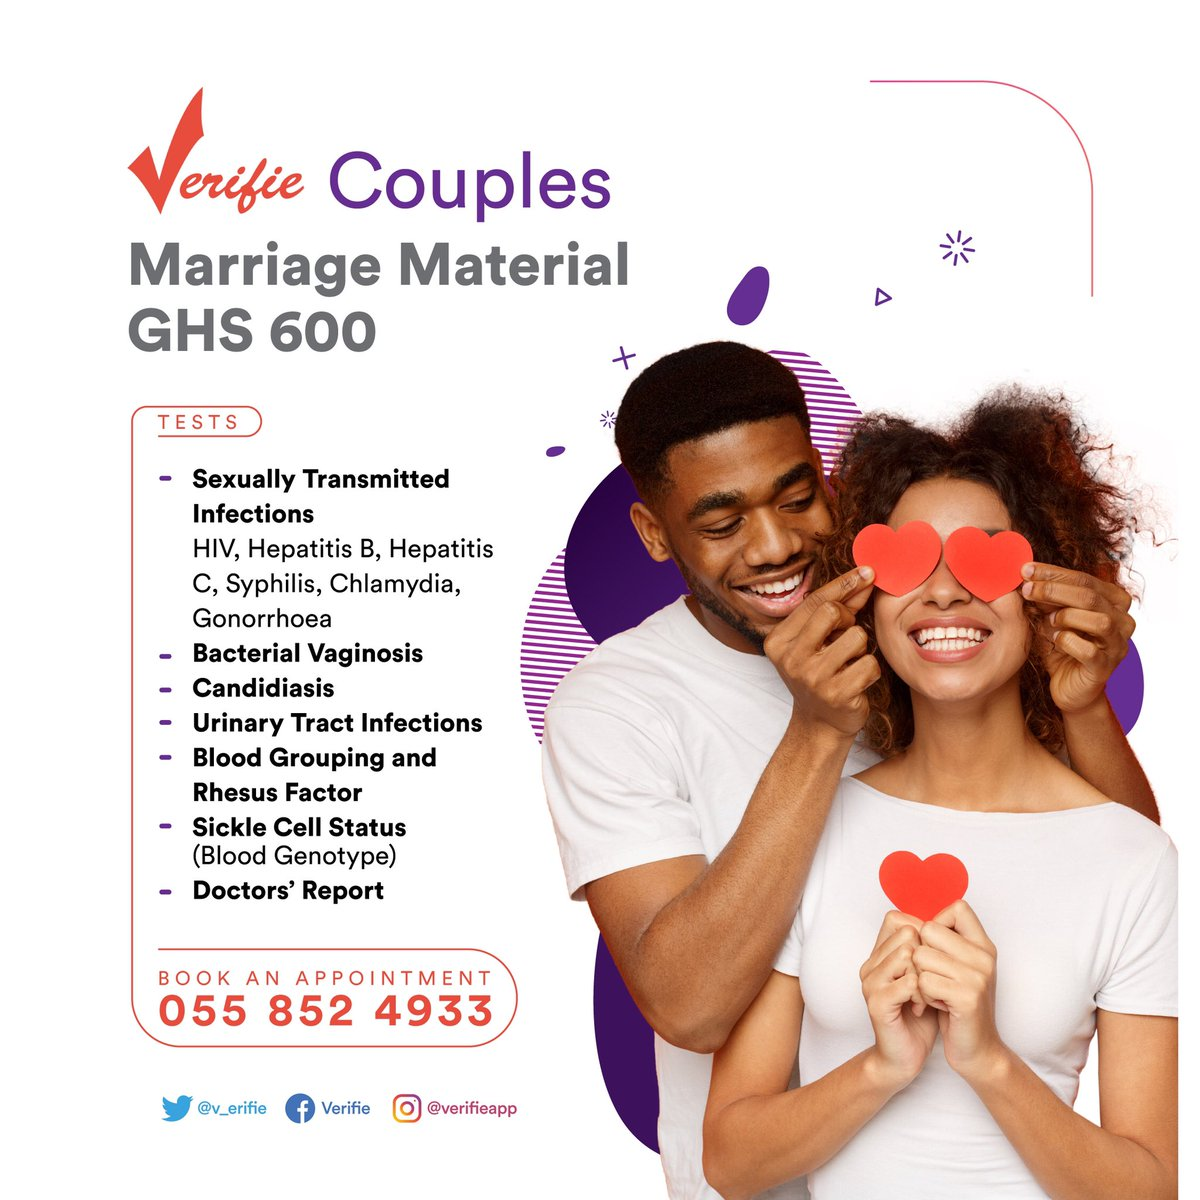 Contemplating, starting a relationship or taking it up a notch? You and your partner need to know some basic facts about each other - STI status + Blood group + Genotype (sickle cell status). It's a no brainier! Book for a test here